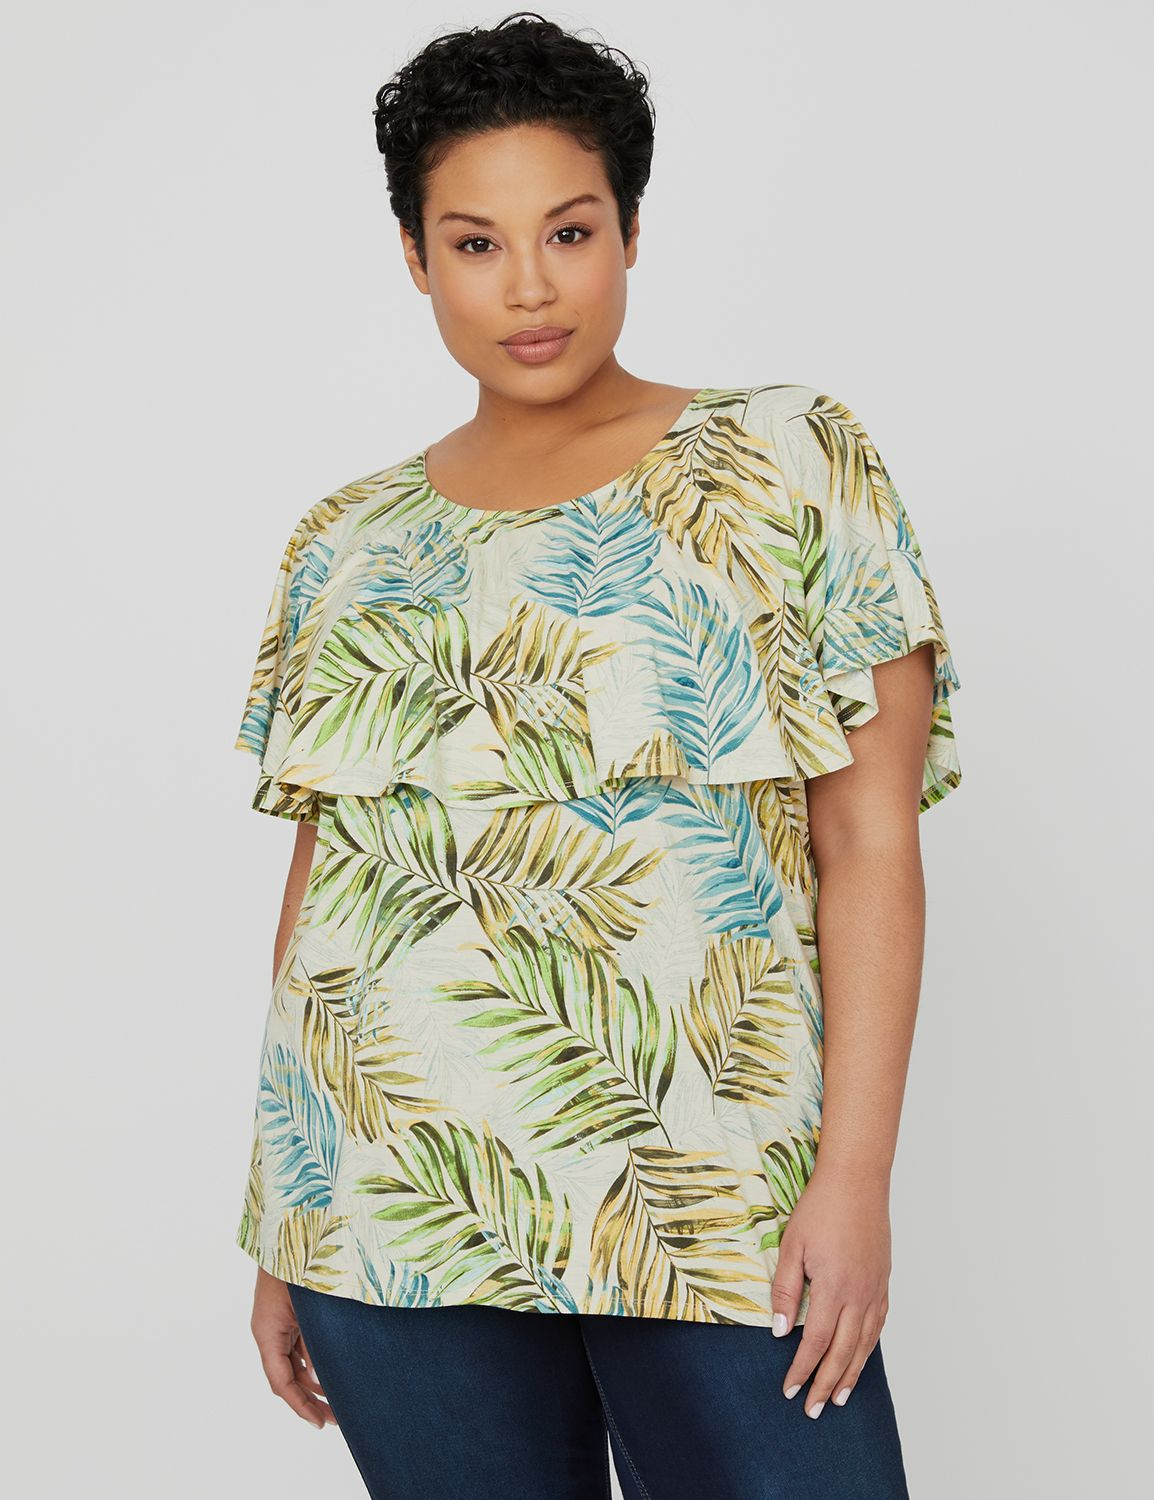 Tropical Flounce Top 1090663 FLOUNCE TROPICAL PRINT MP-300105142